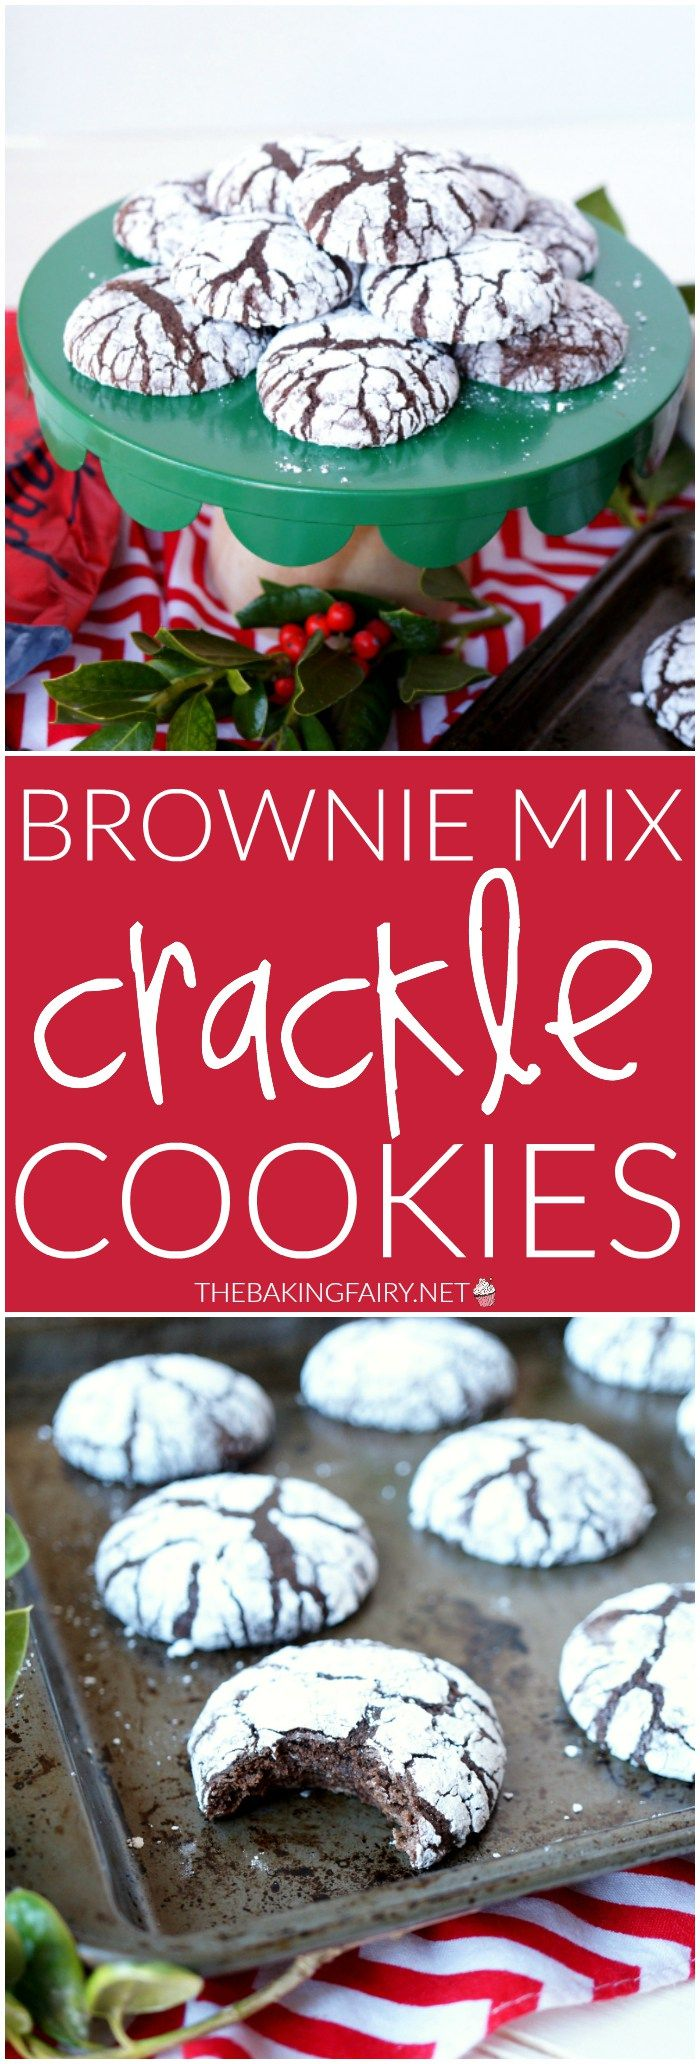 Brownie Mix Crackle Cookies are SO easy to make and the perfect addition to your holiday cookie trays! Sponsored by Dunkin' Donuts. #DunkinAtHome #BakerySeries #ad